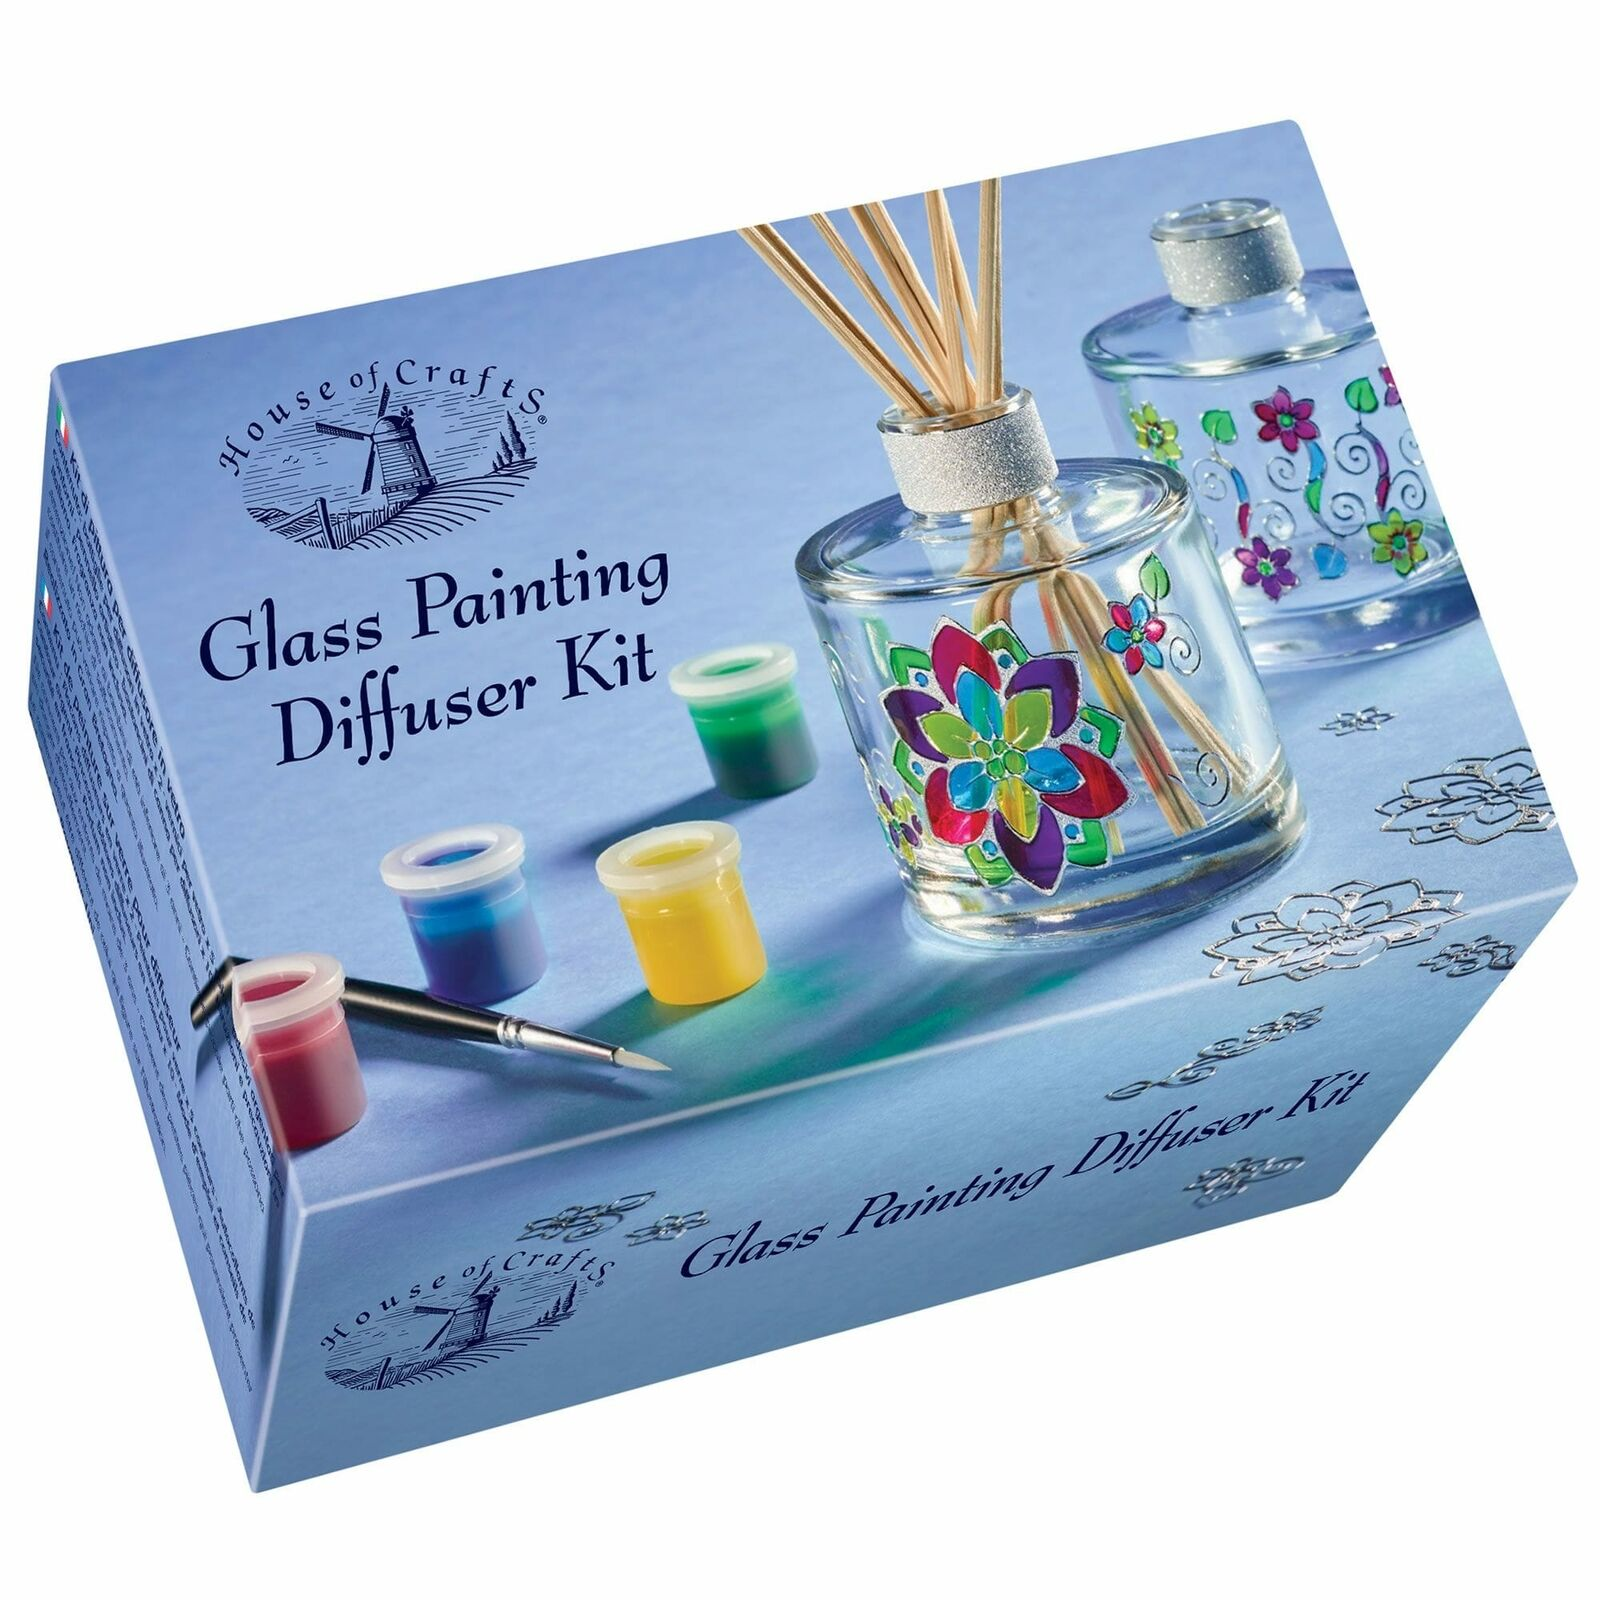 House of Crafts Glass Painting Diffuser Kit